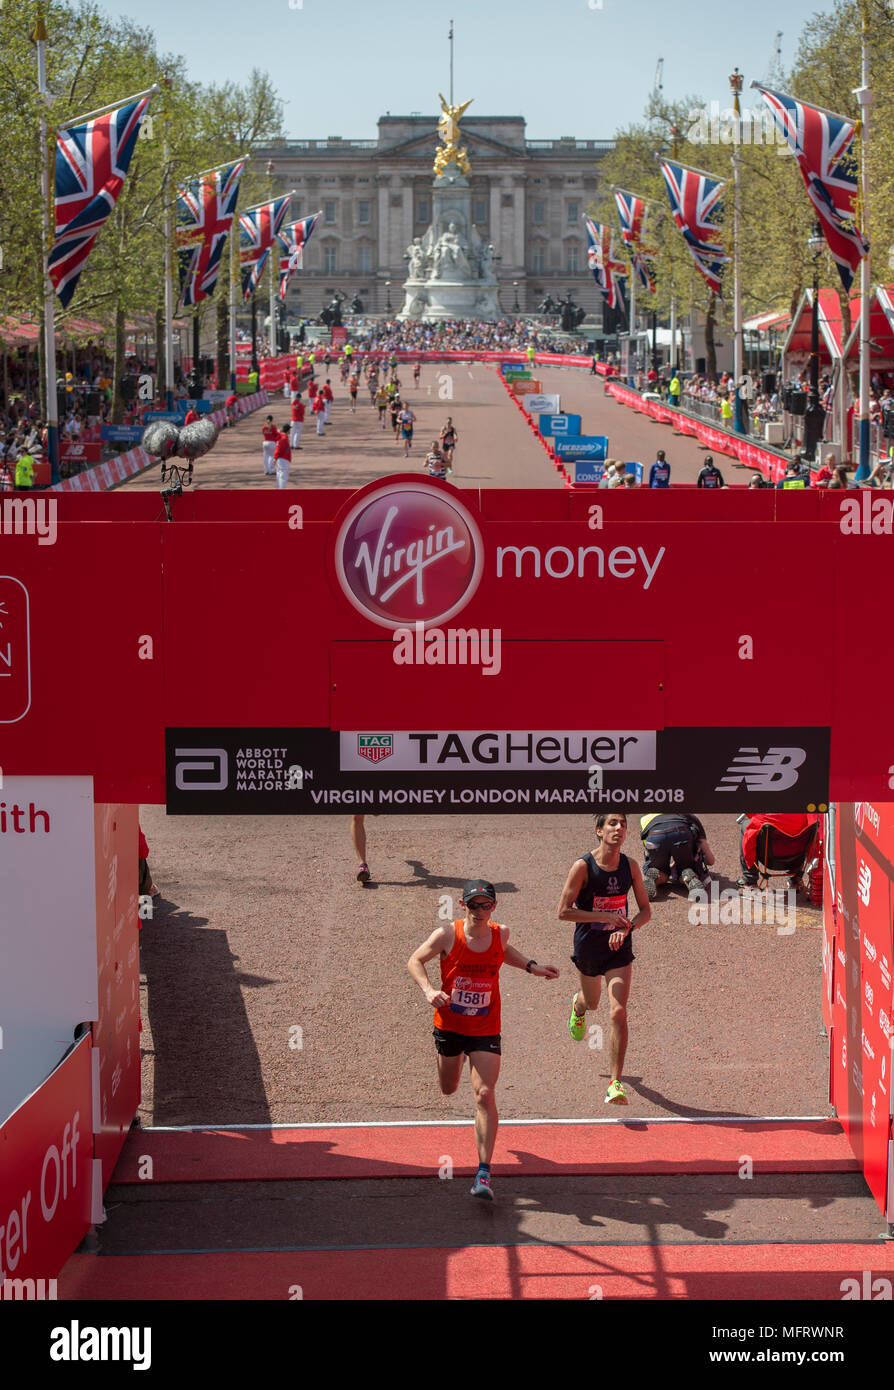 22 April 2018. Runners finishing the Mass Event at the Virgin Money London Marathon 2018 on The Mall. - Stock Image